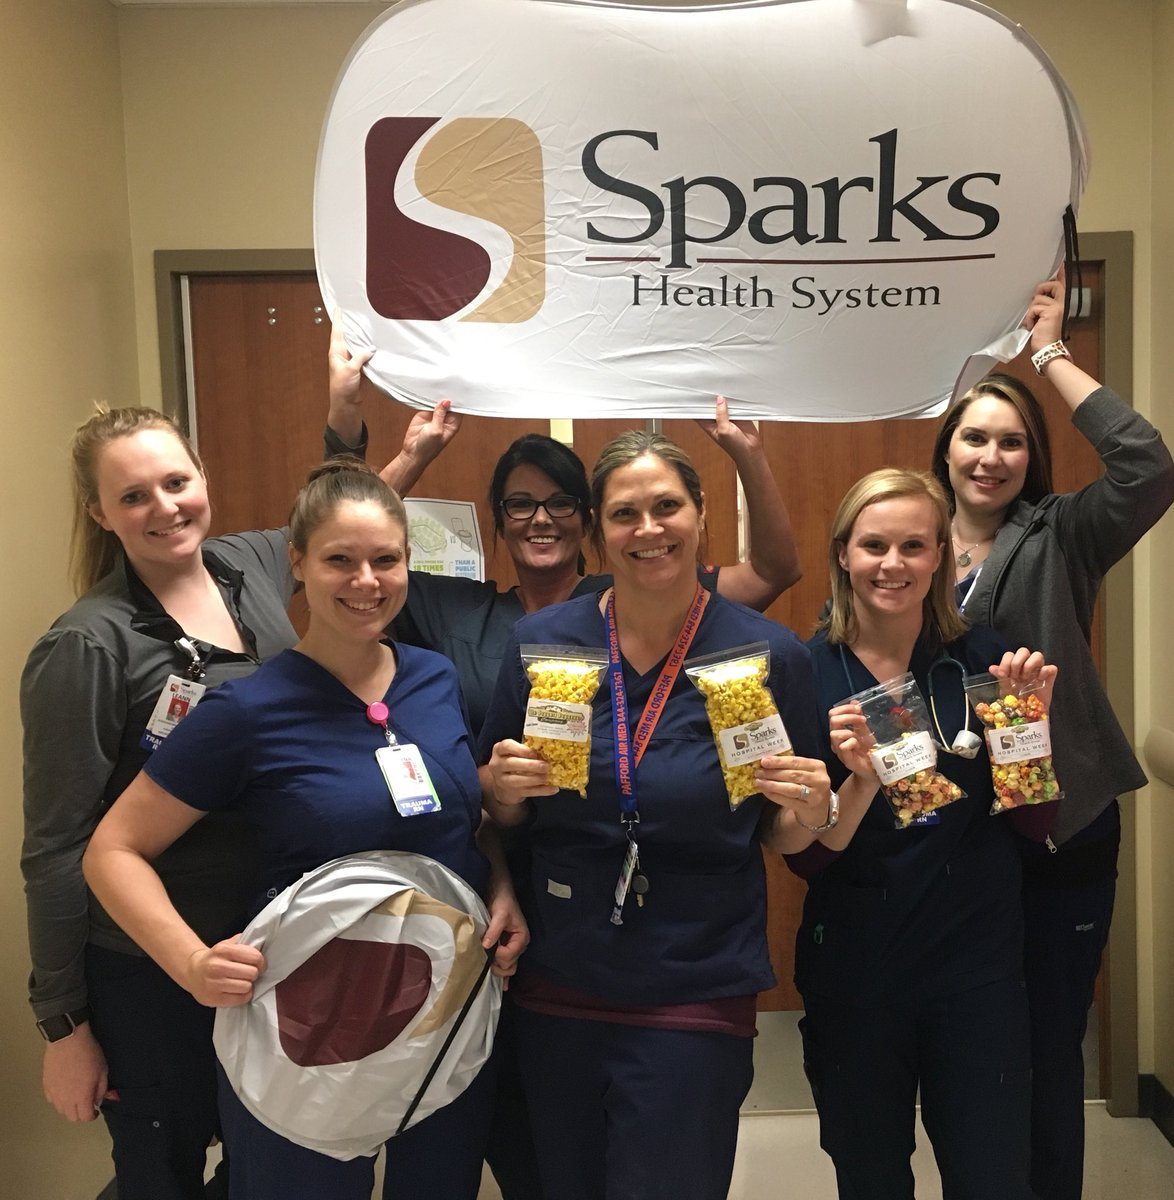 Sparks Health System Picture